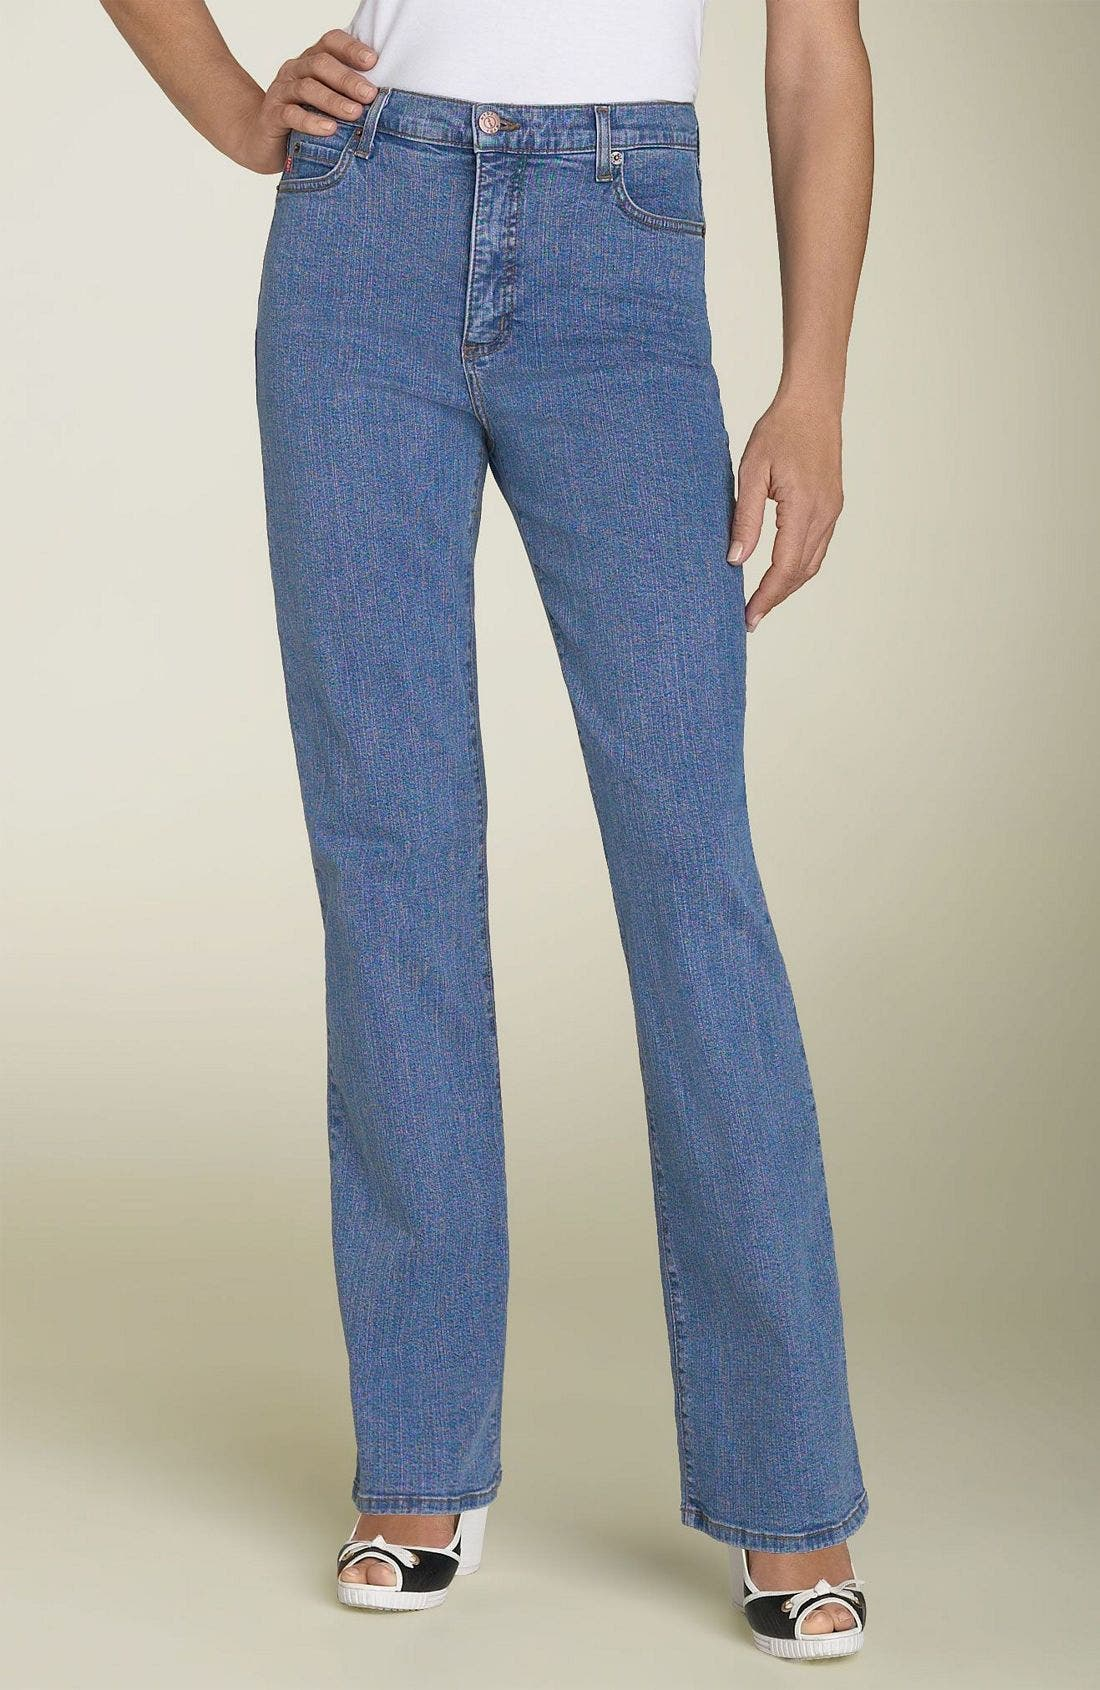 Main Image - Not Your Daughter's Jeans Tummy Tuck Stretch Jeans (Petite)